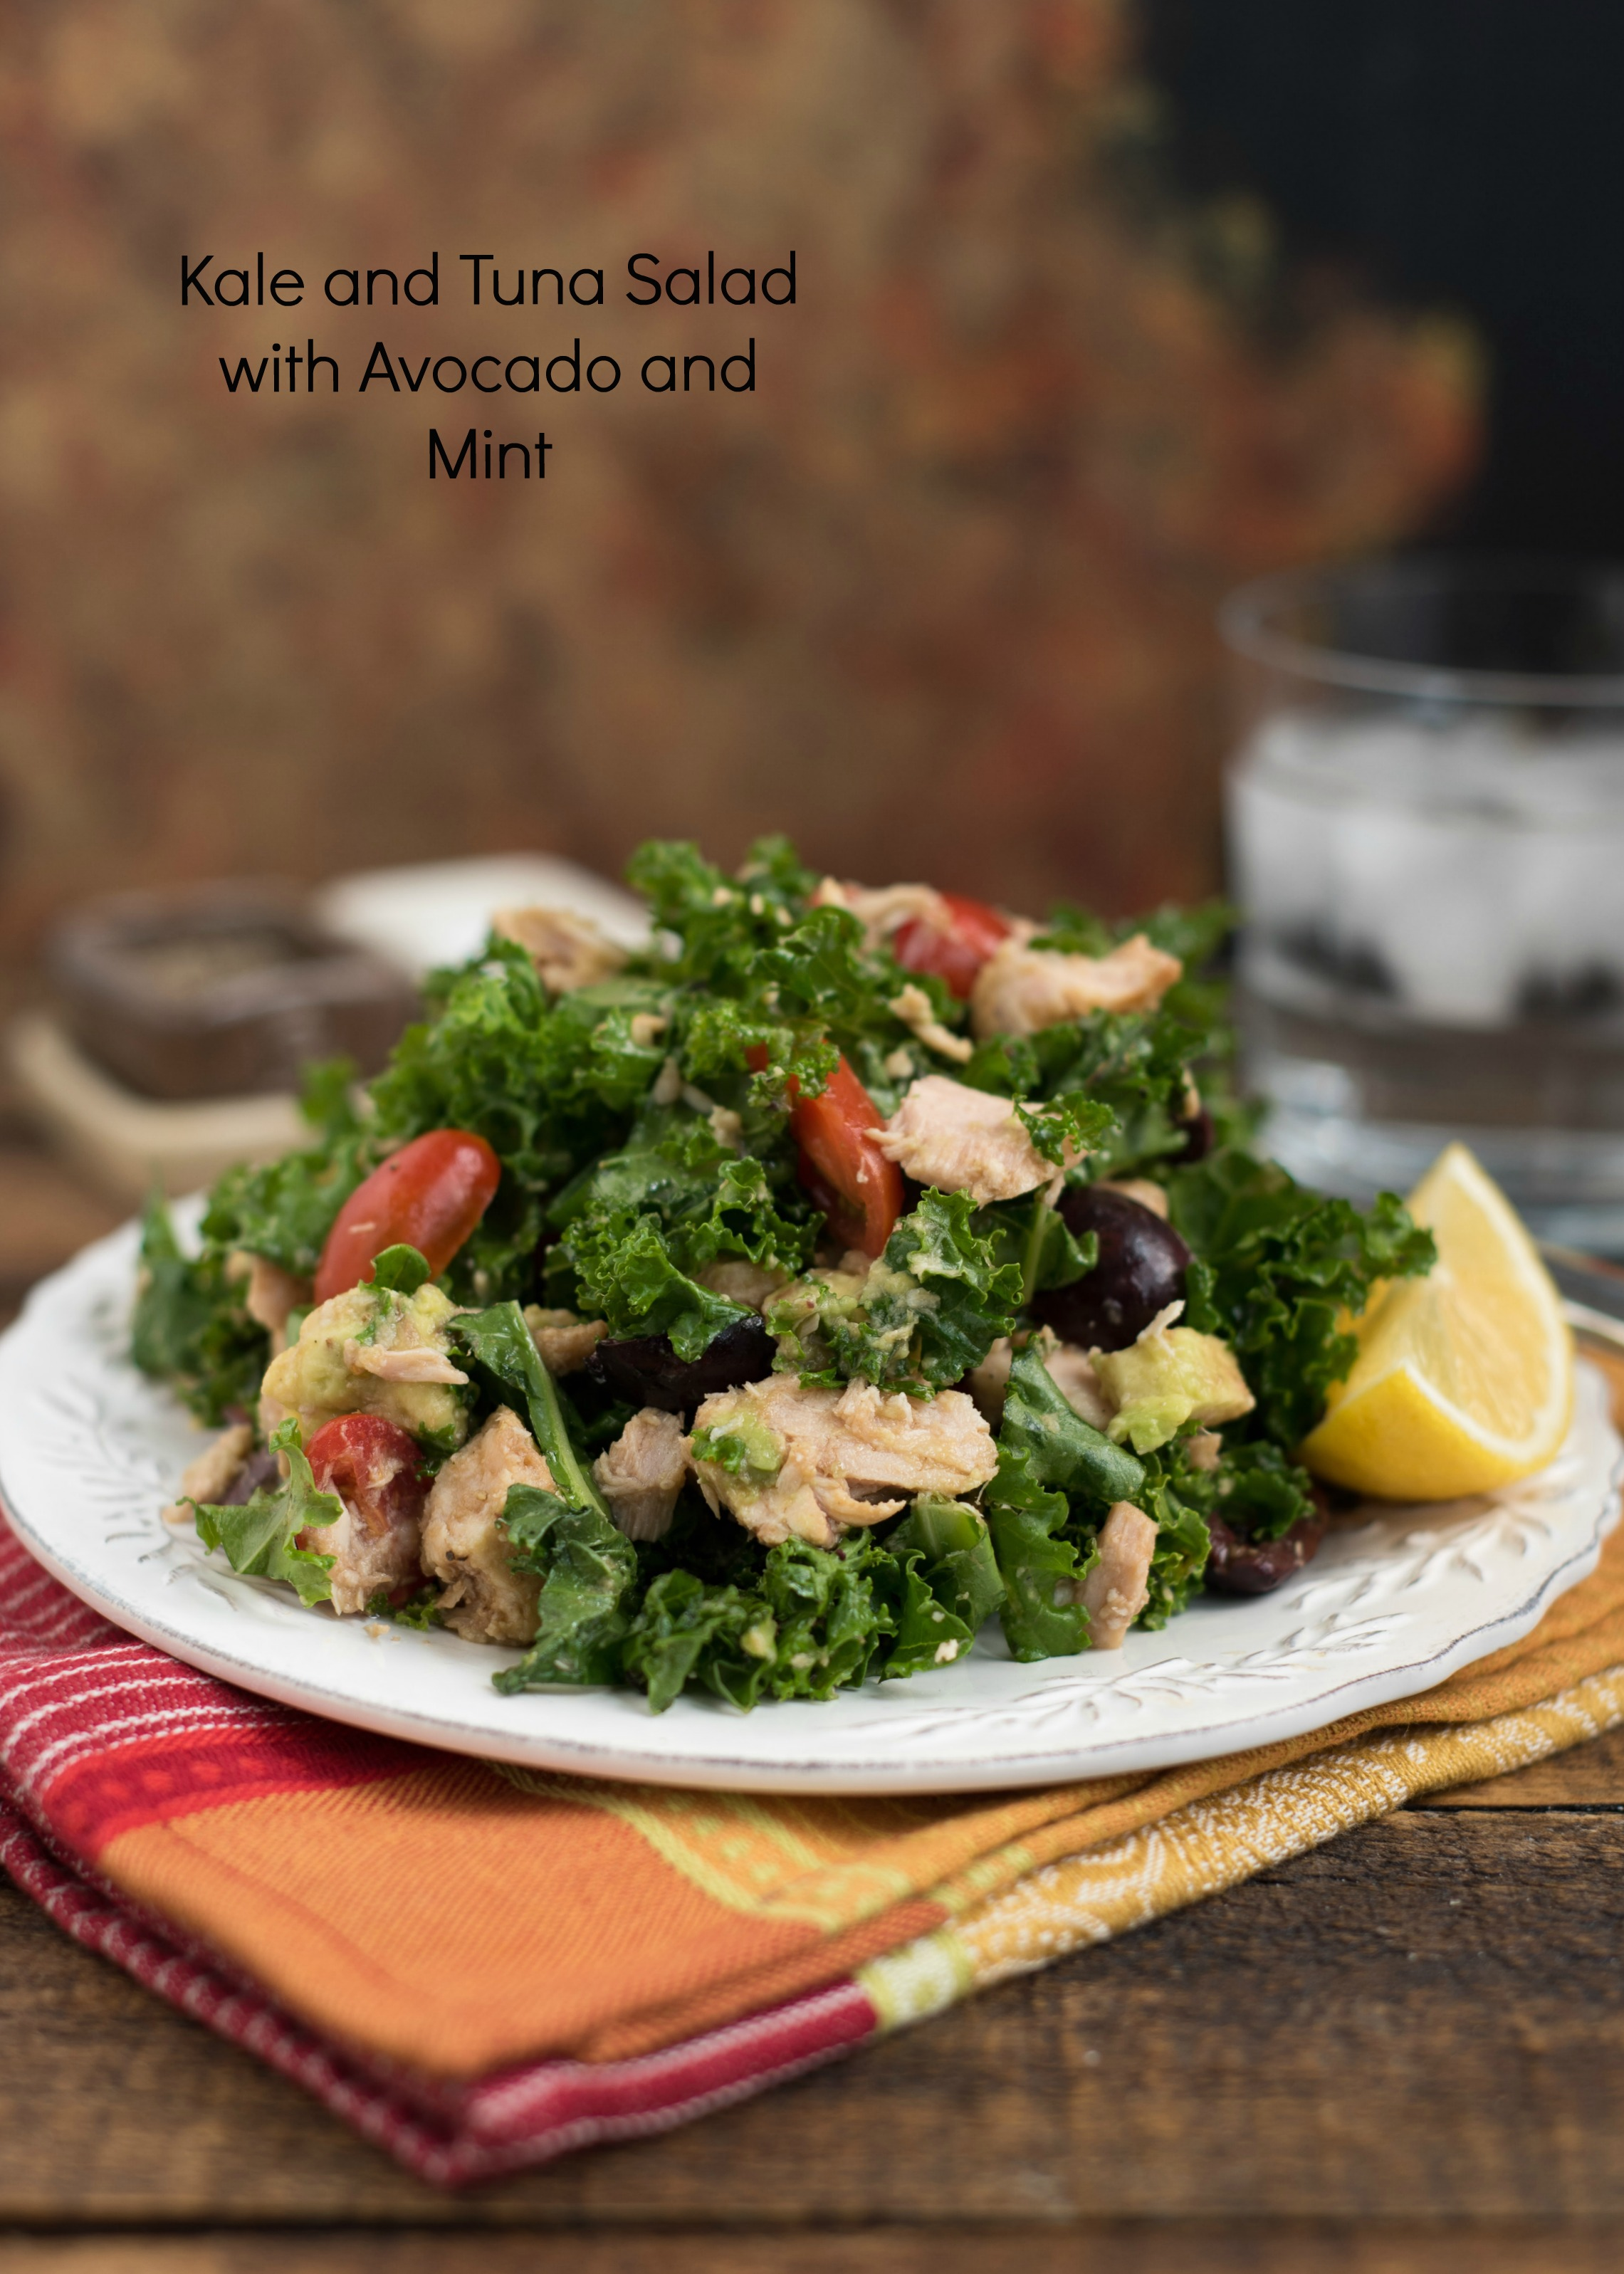 Kale and Tuna Salad With Avocado and Mint- a great make-ahead salad for weekday lunches. Delicious, healthy, Paleo-friendly and Vegetarian! | www.nutritiouseats.com